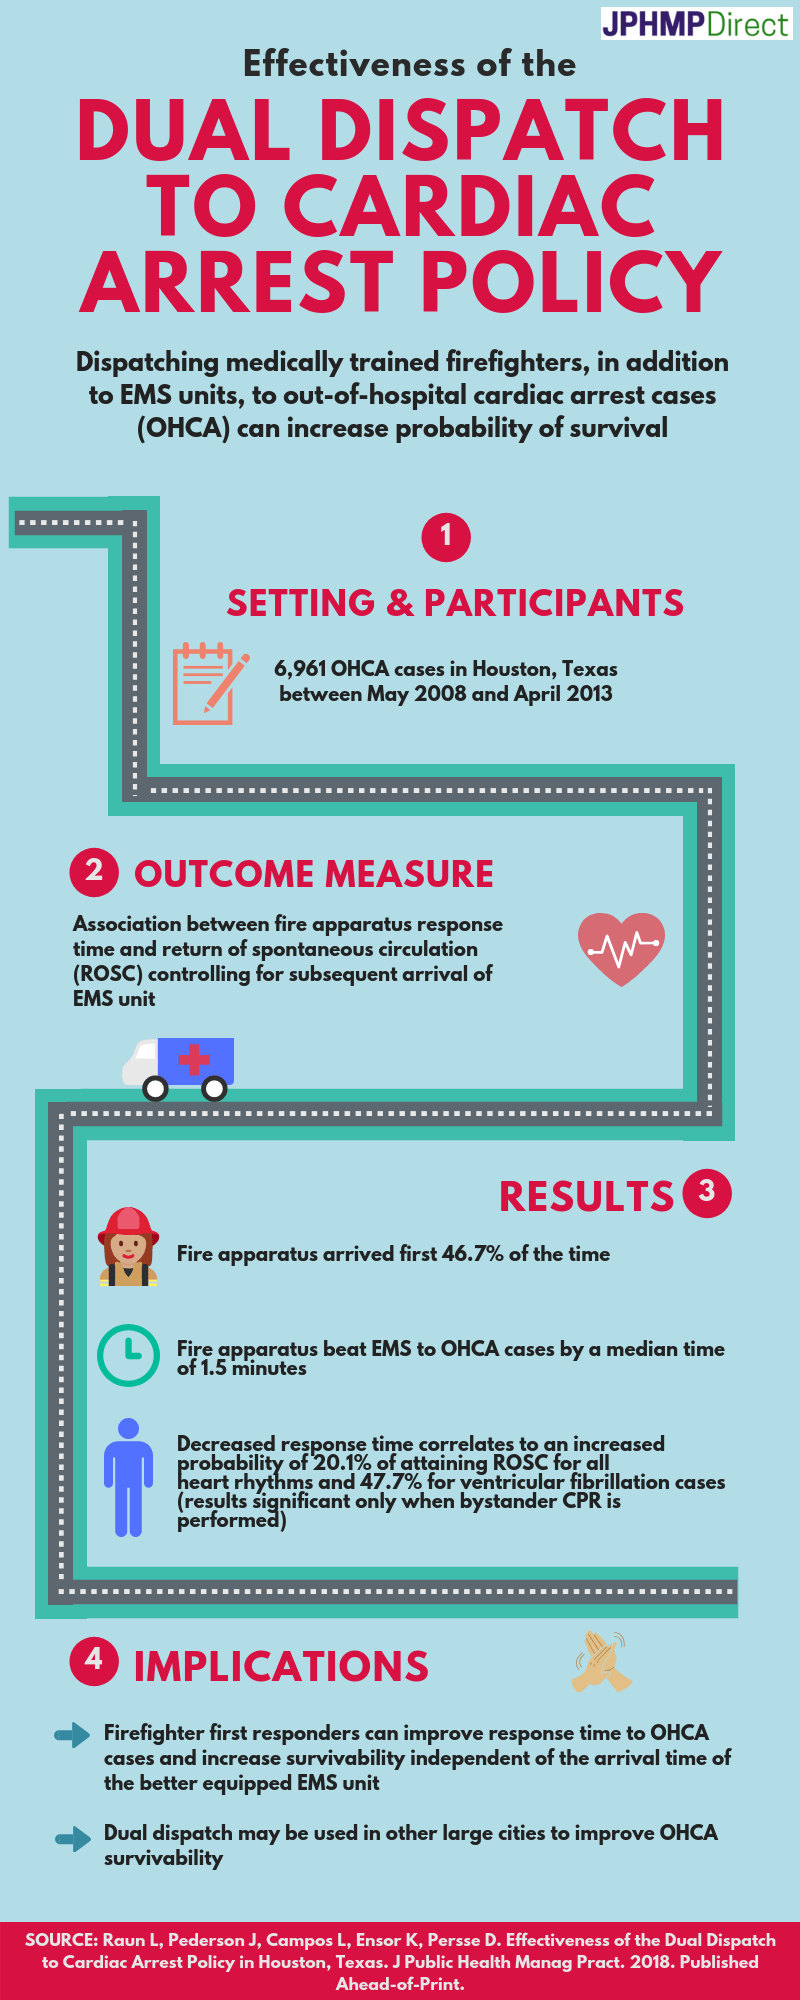 Effectiveness of the Dual Dispatch to Cardiac Arrest Policy infographic